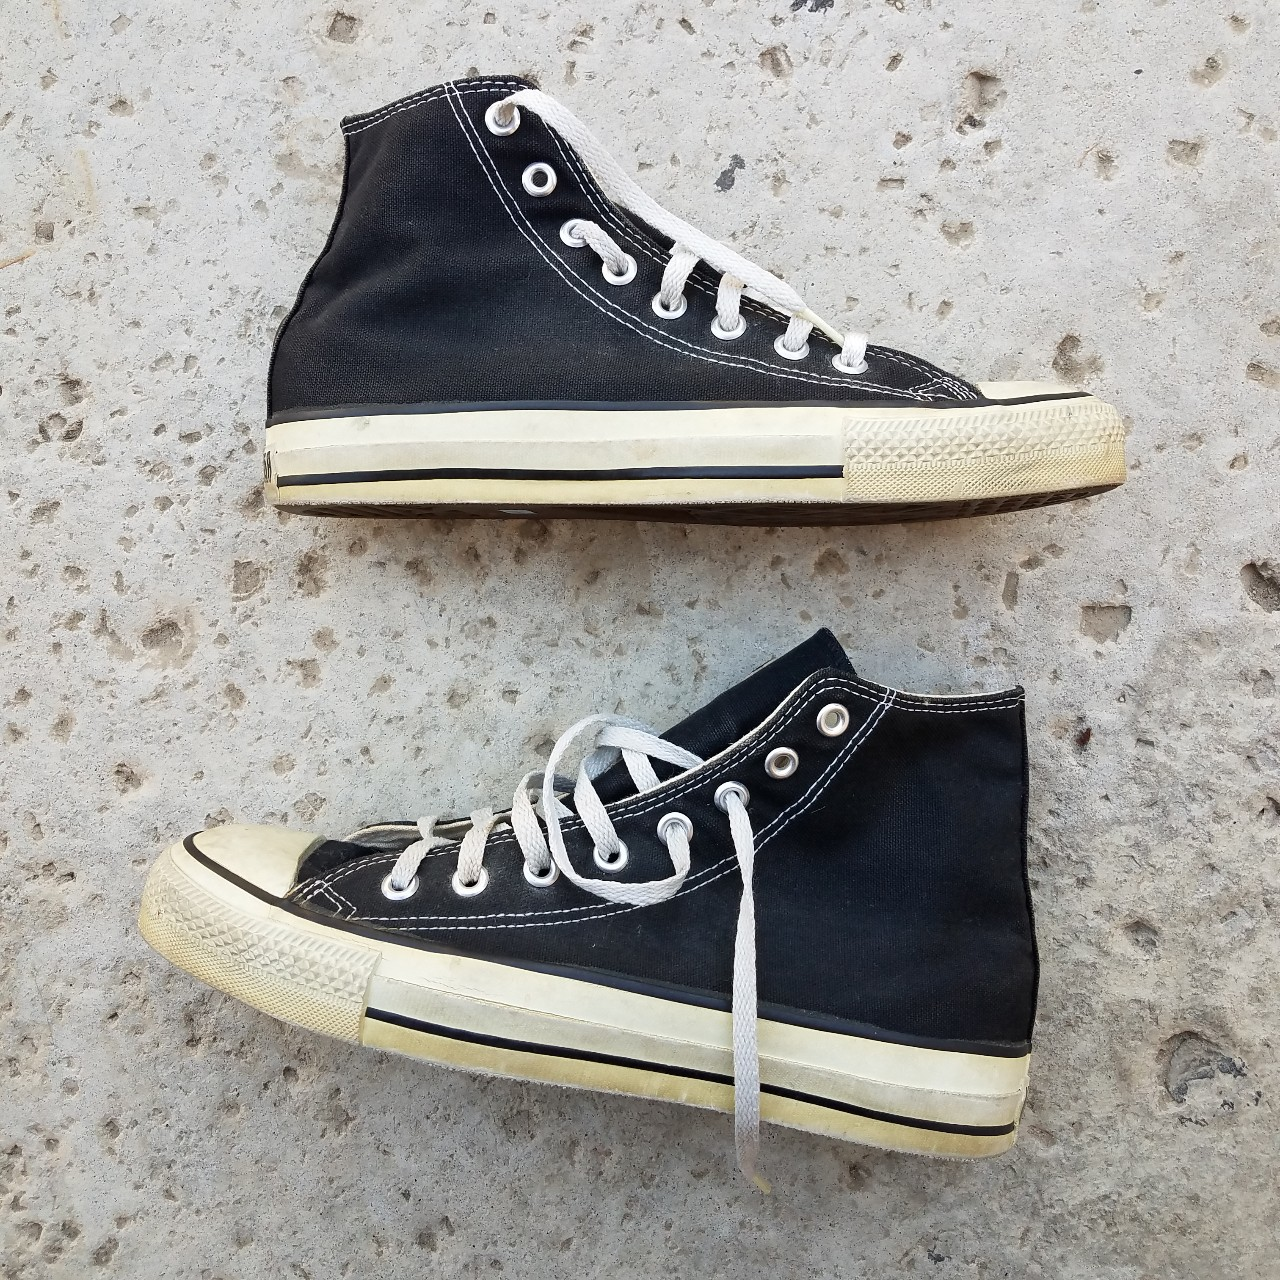 pretty nice latest design incredible prices 🔥FREE SHIPPING🔥 Vintage 70s Converse made in USA... - Depop